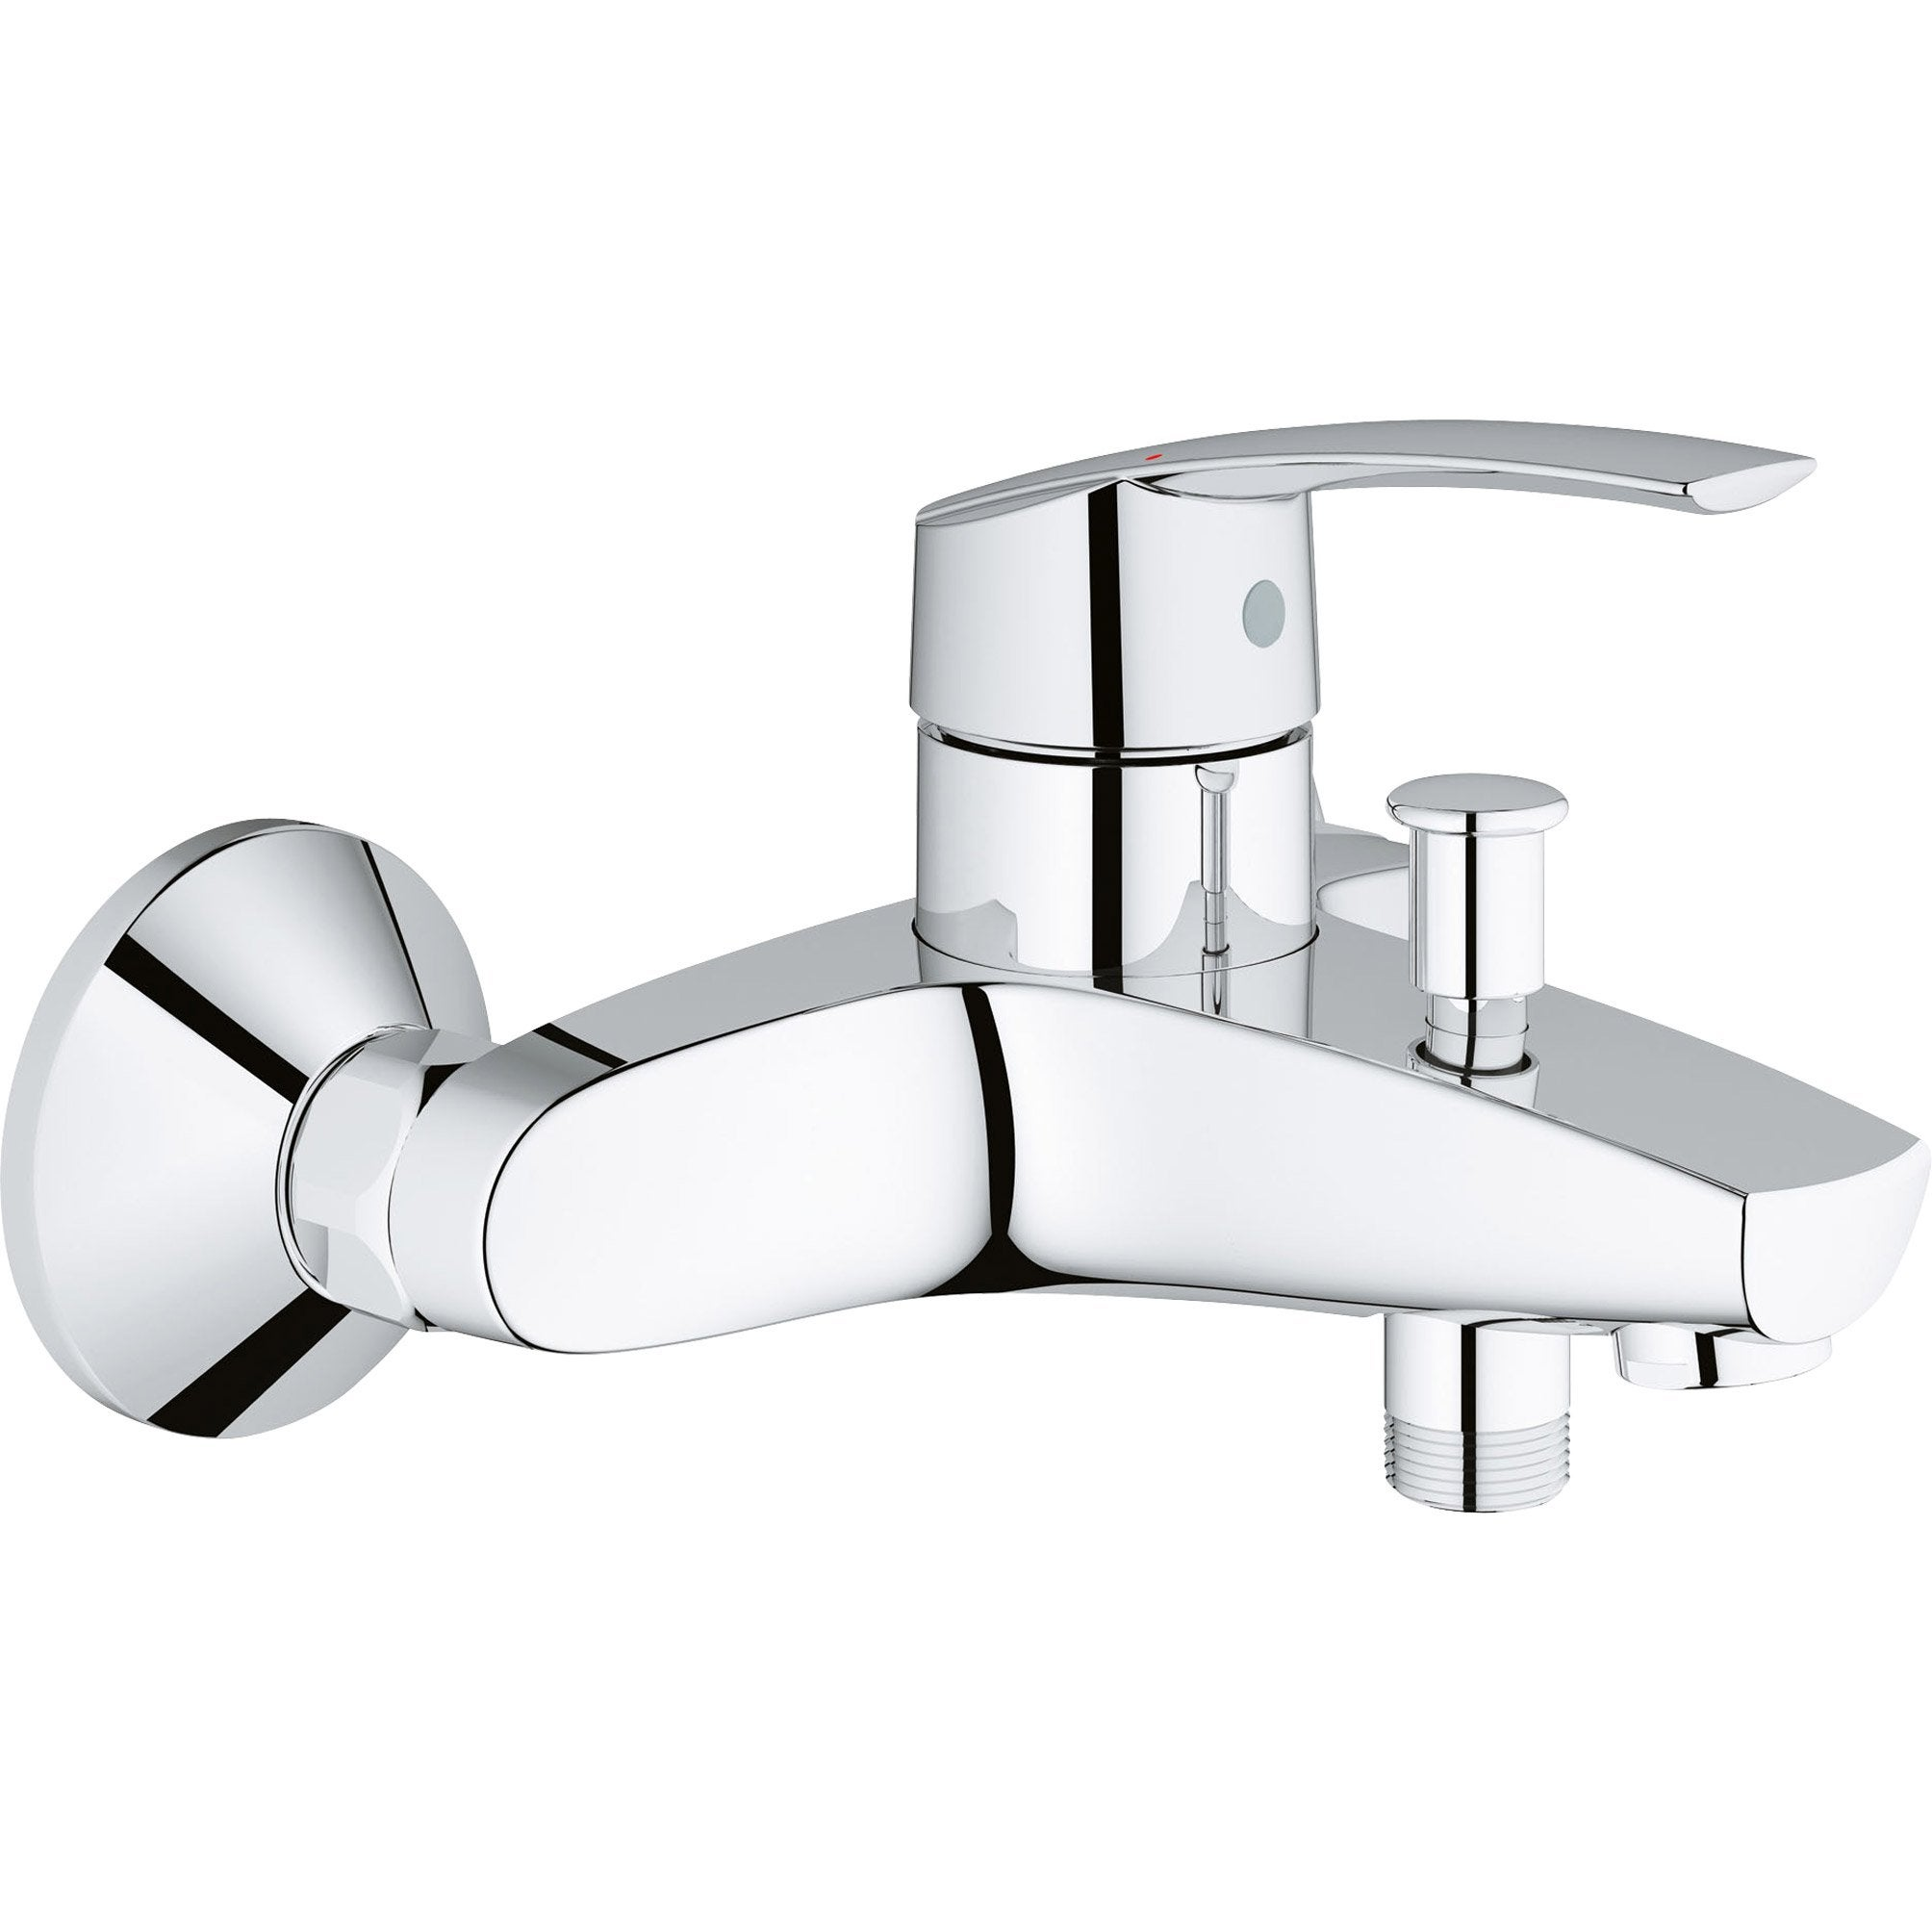 Robinet De Baignoire Grohe Index Of Ince Stmpg